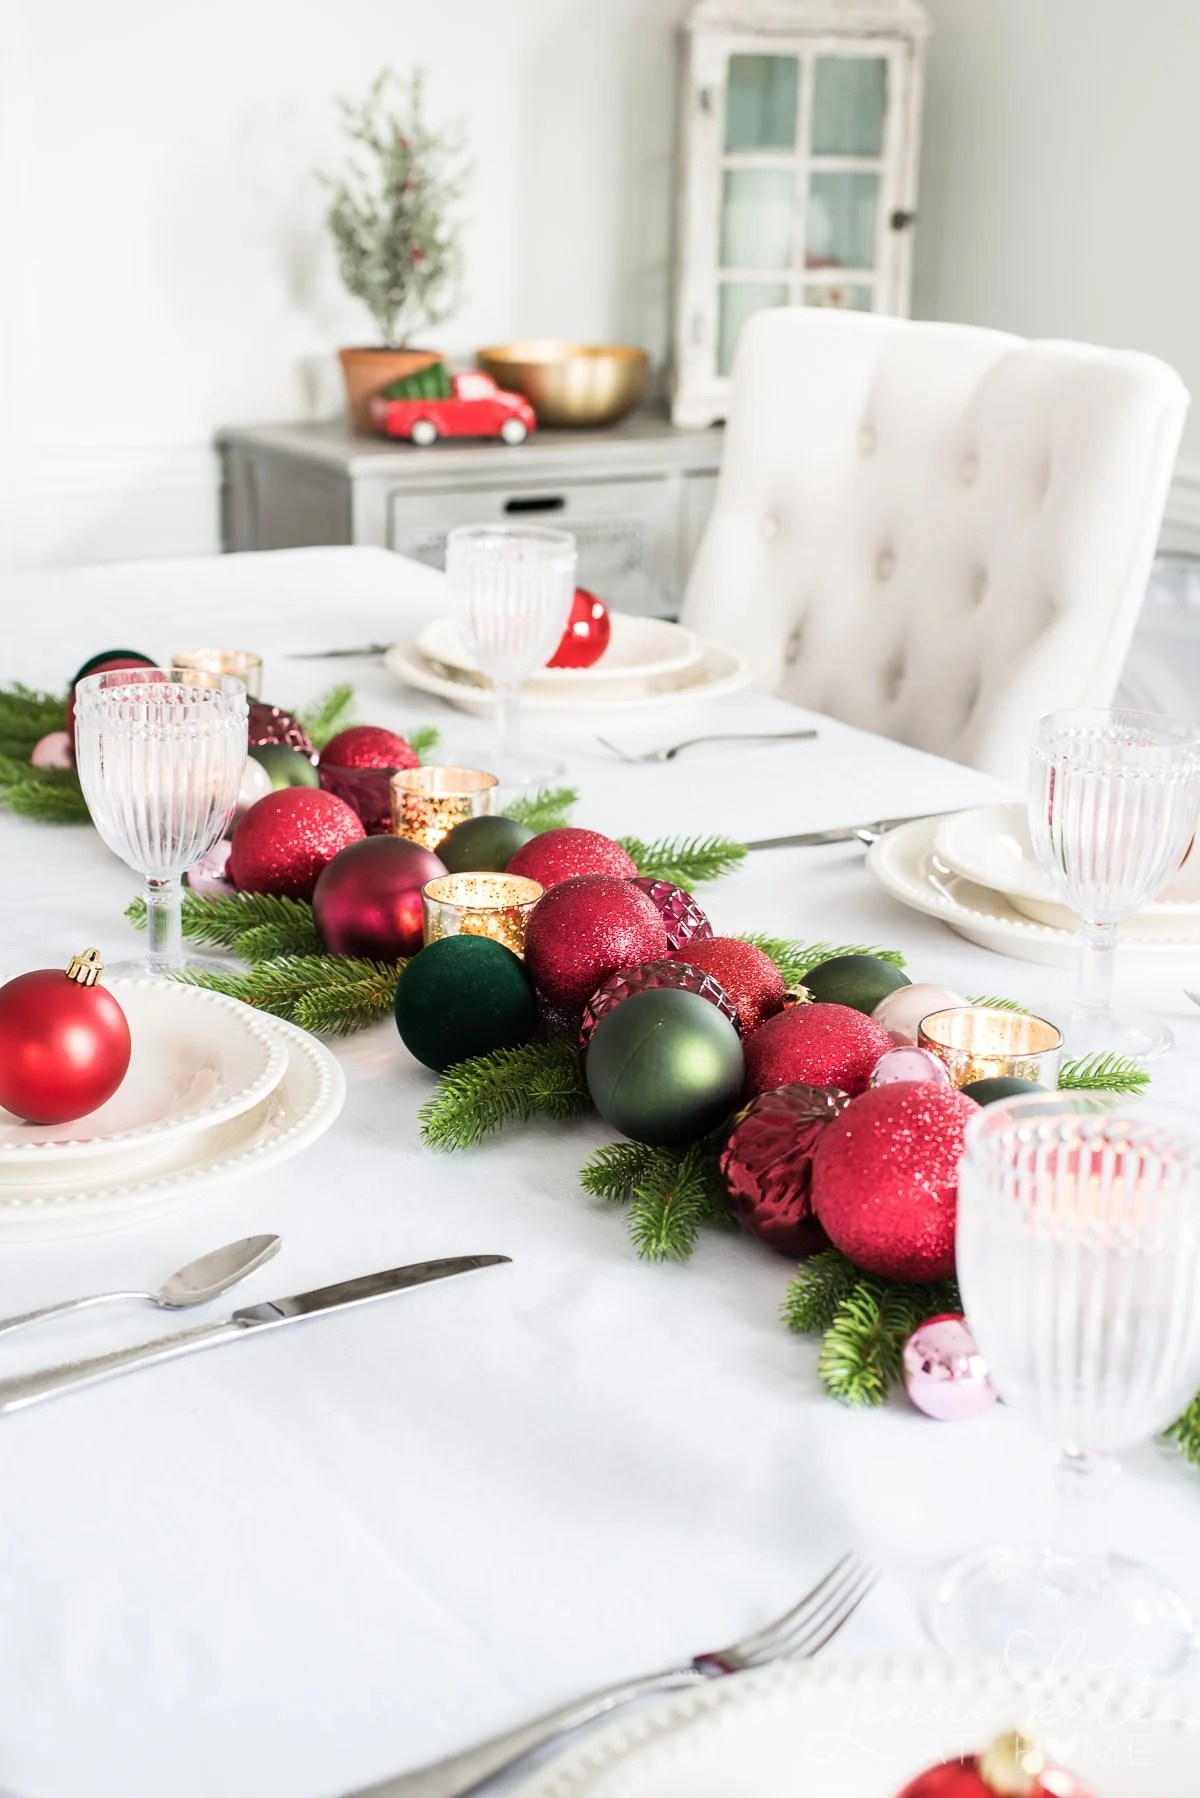 Quick and easy Christmas table decorations